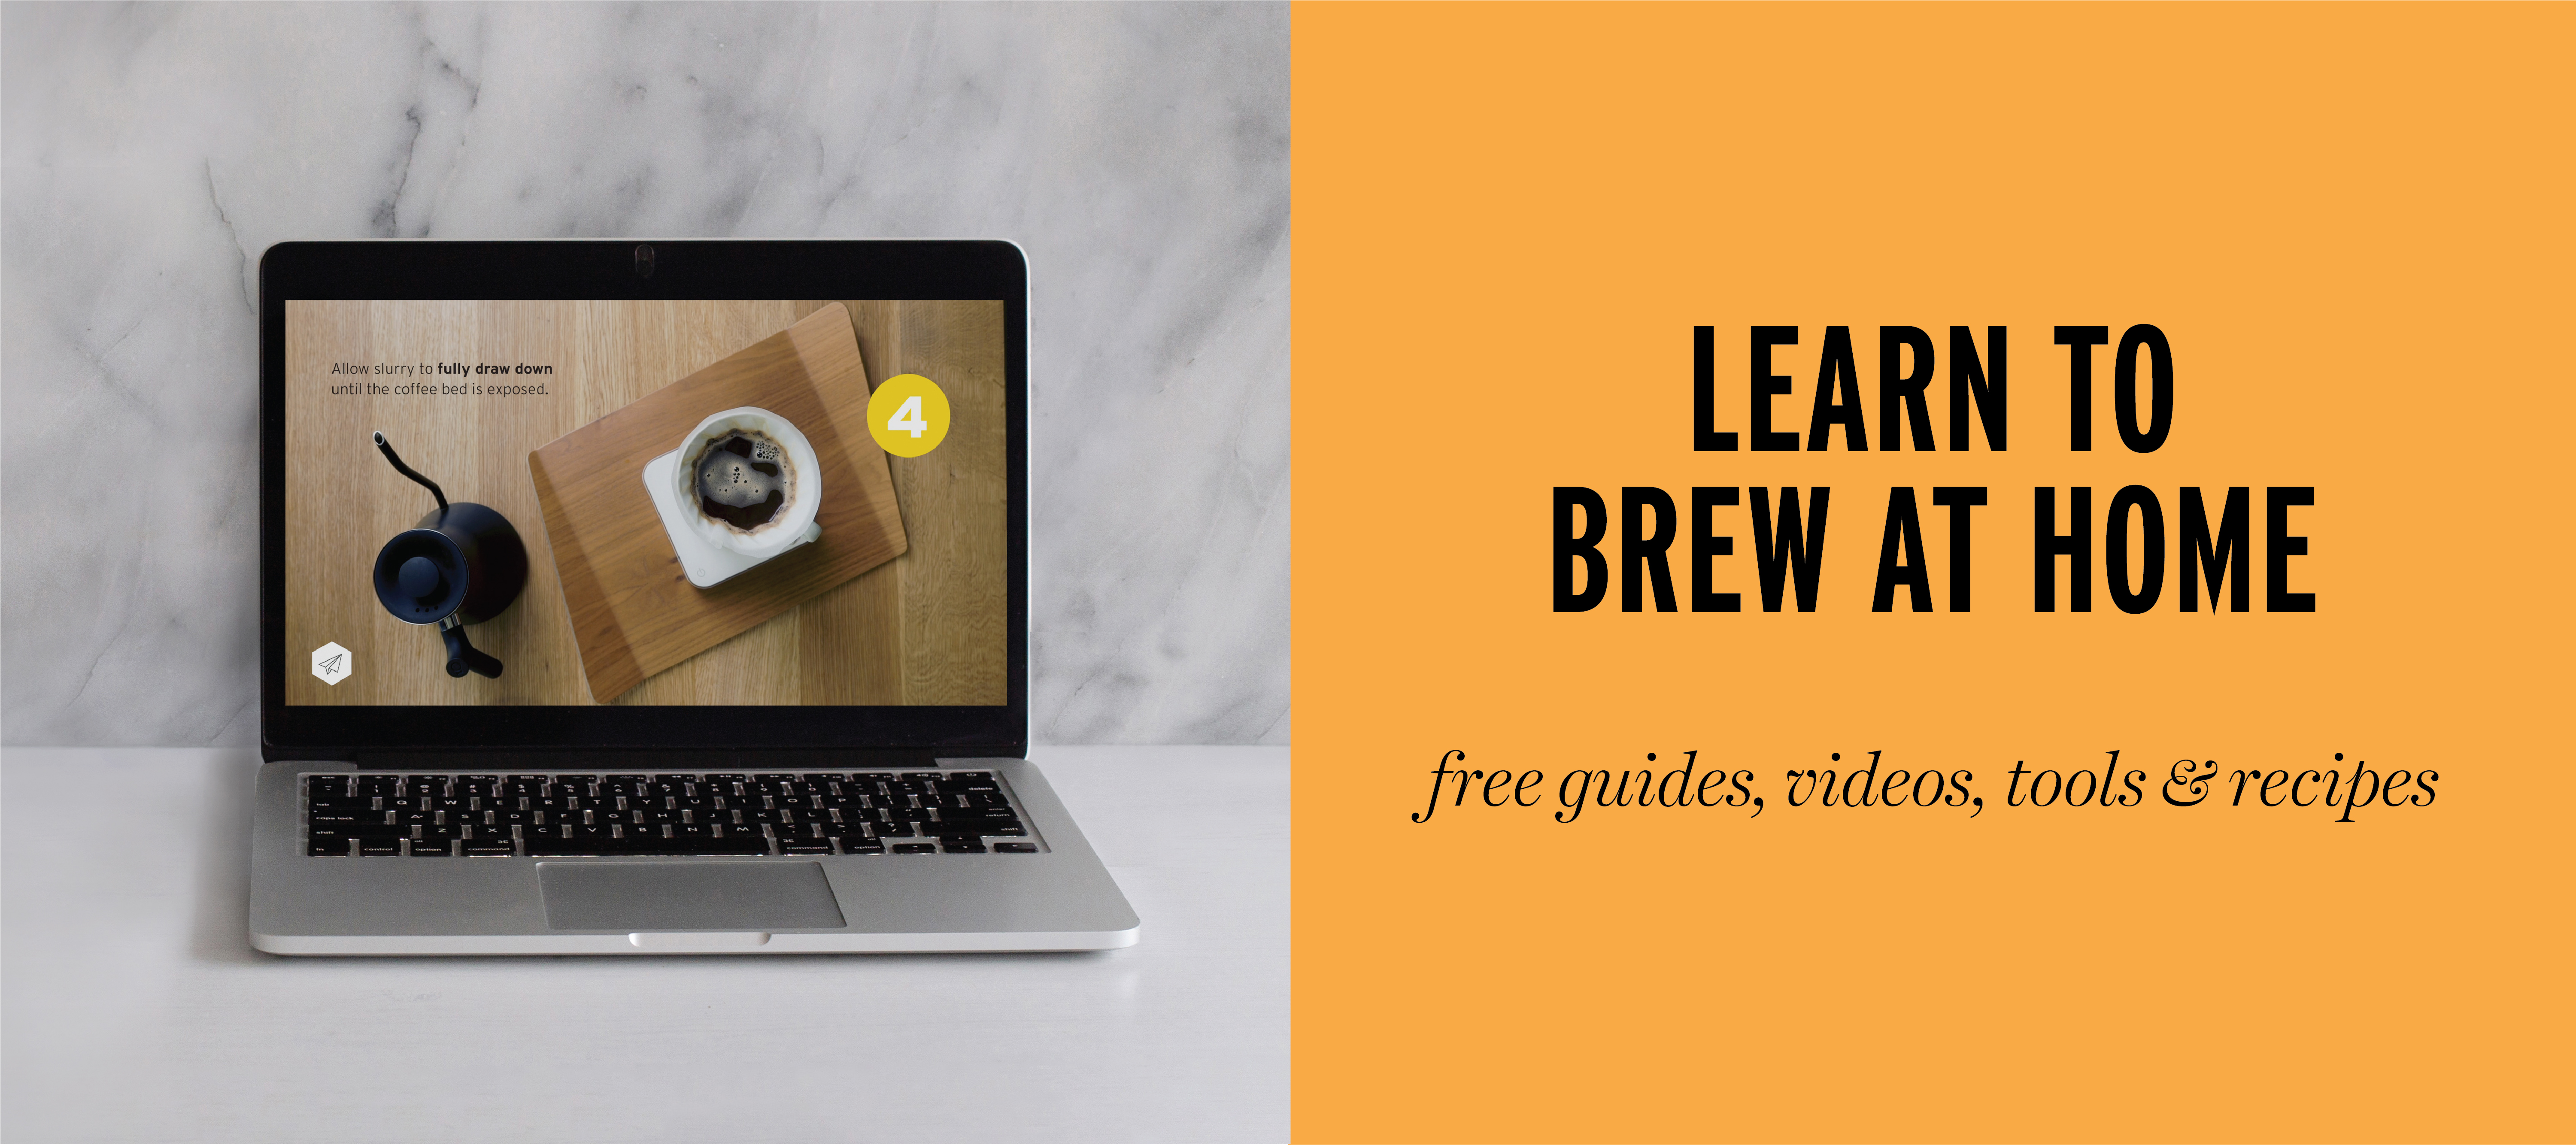 Free brew guides, videos, tools and recipes - learn how to make great coffee